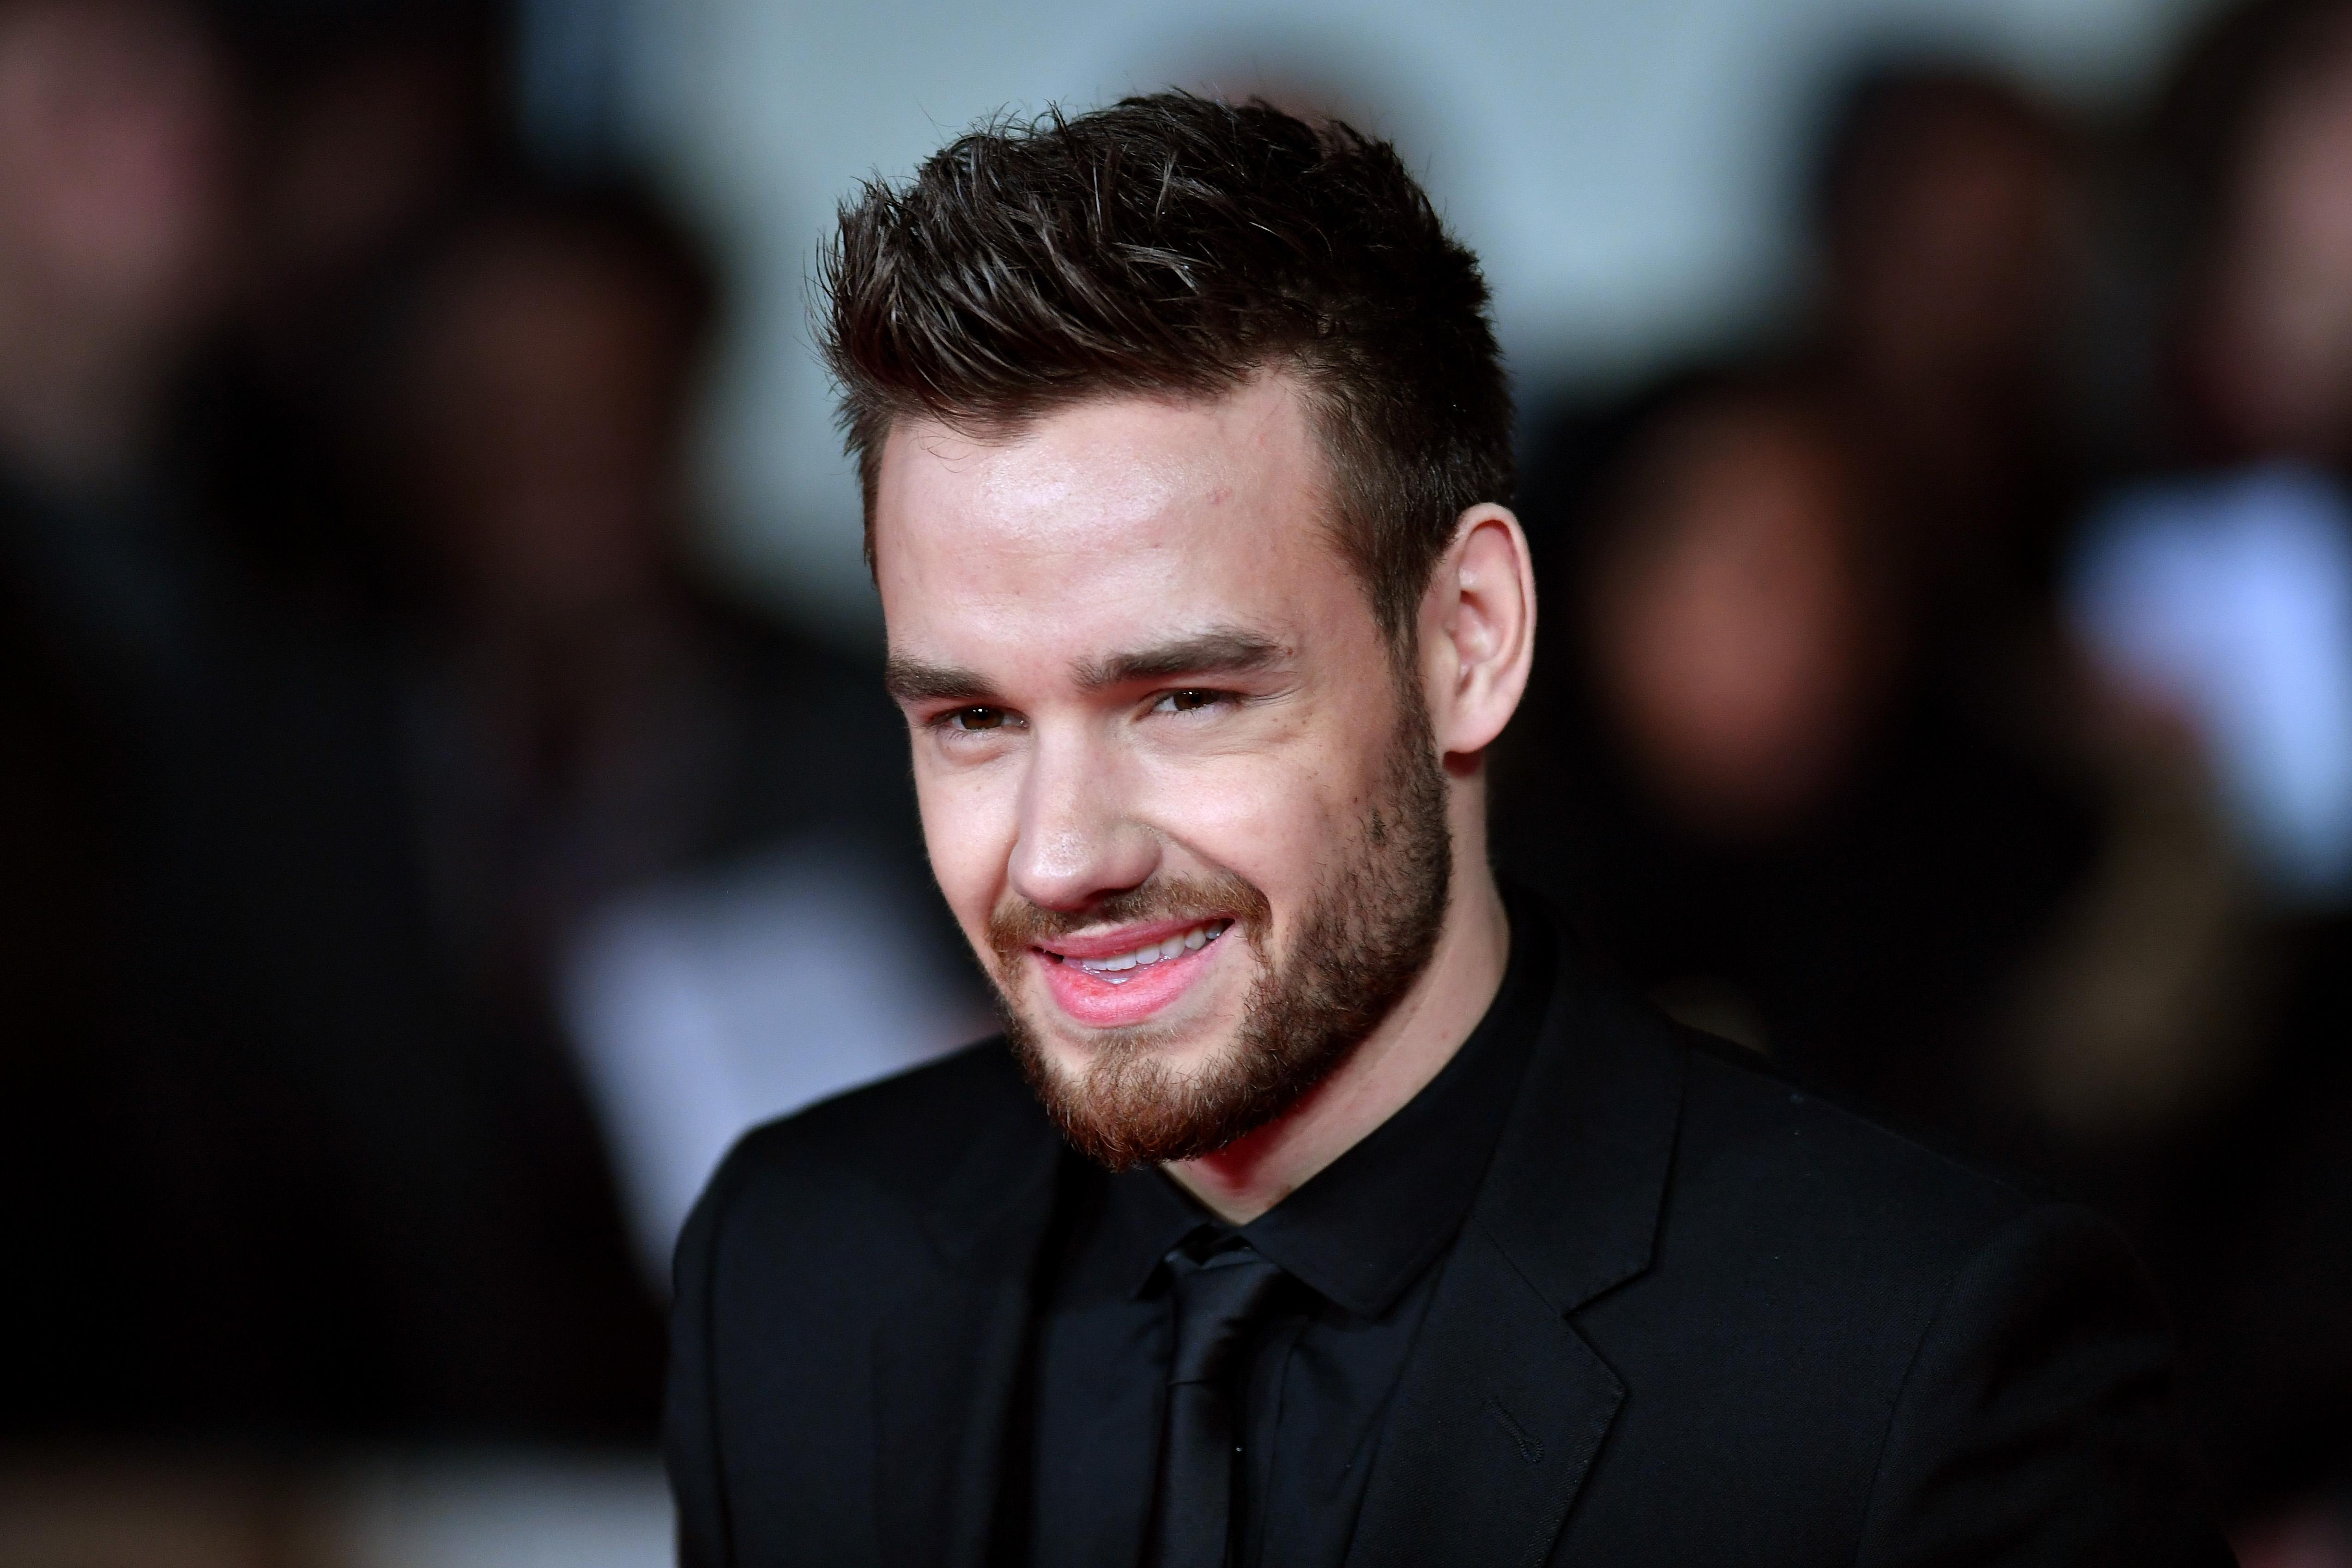 Liam Payne Responds To Harry Styles' One Direction 'SNL' Joke